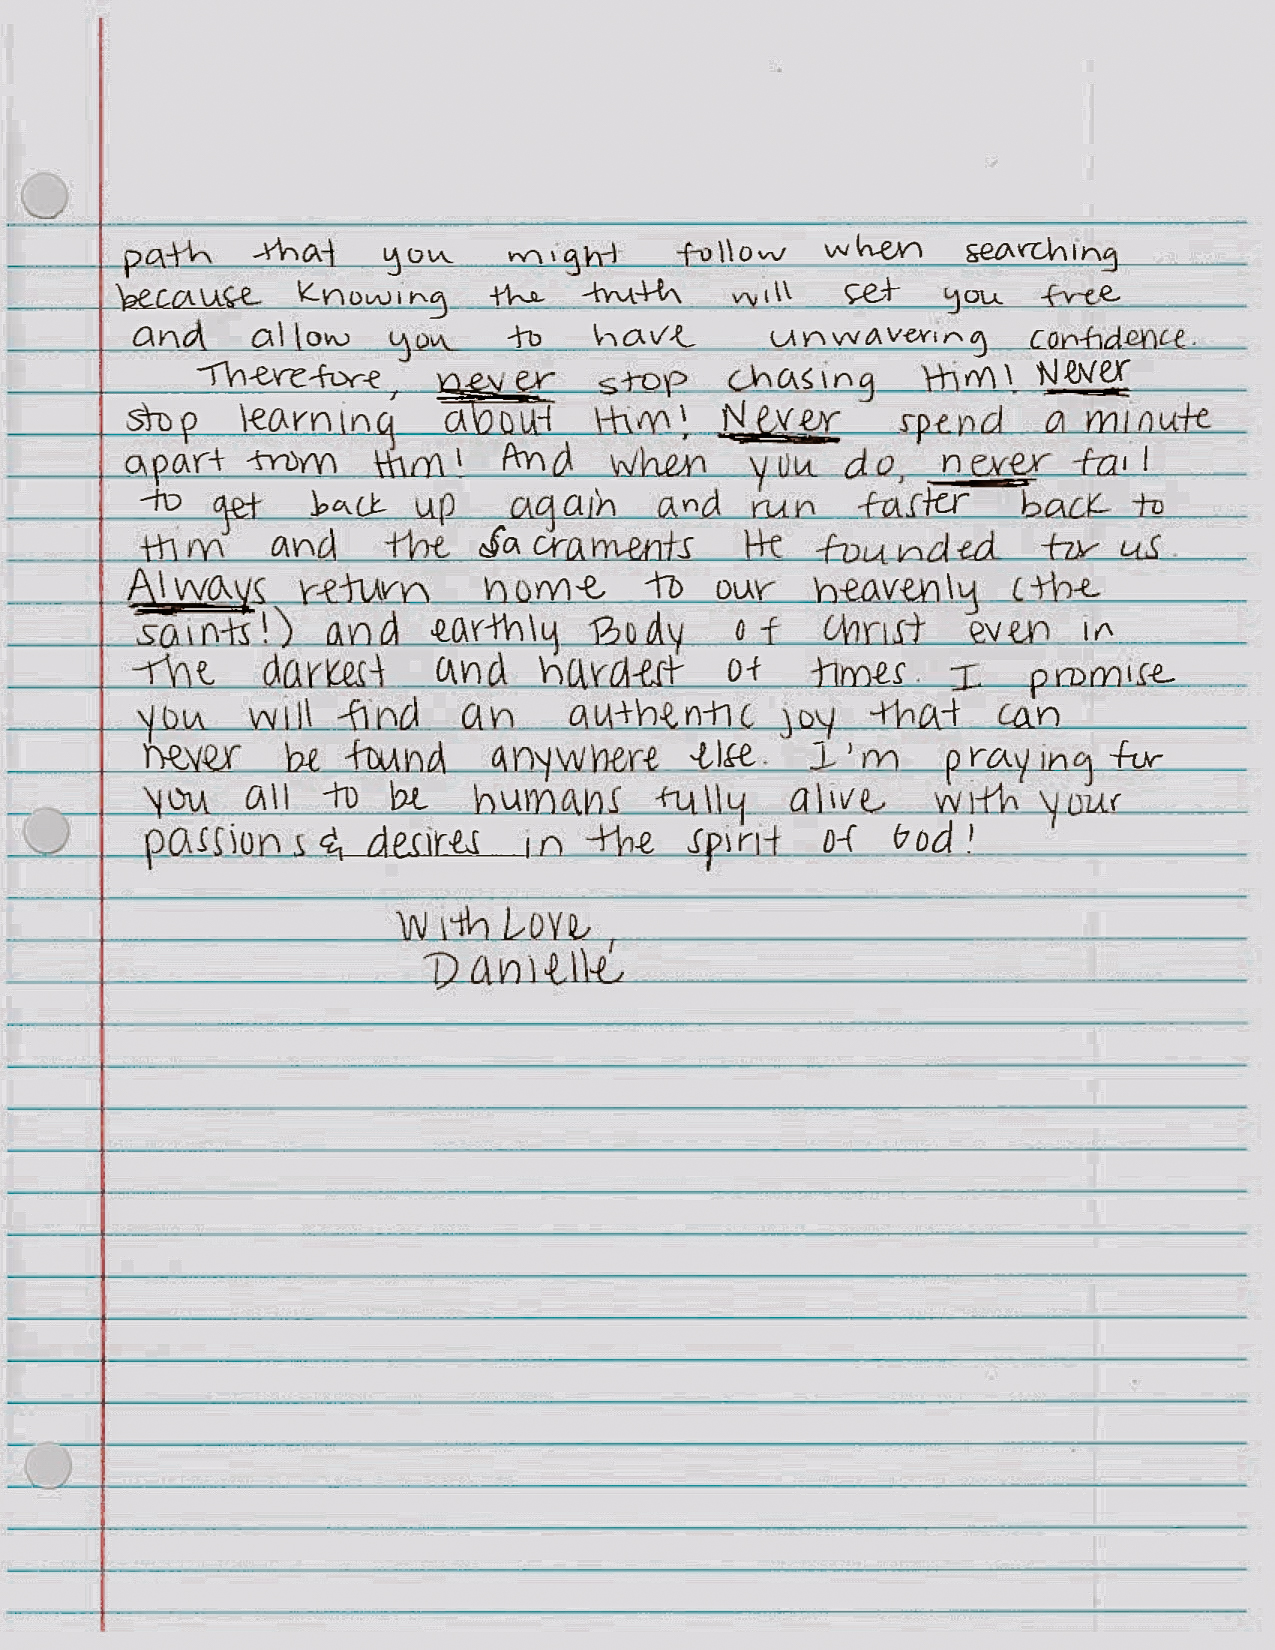 The-Catholic-Woman Letters-39.jpg